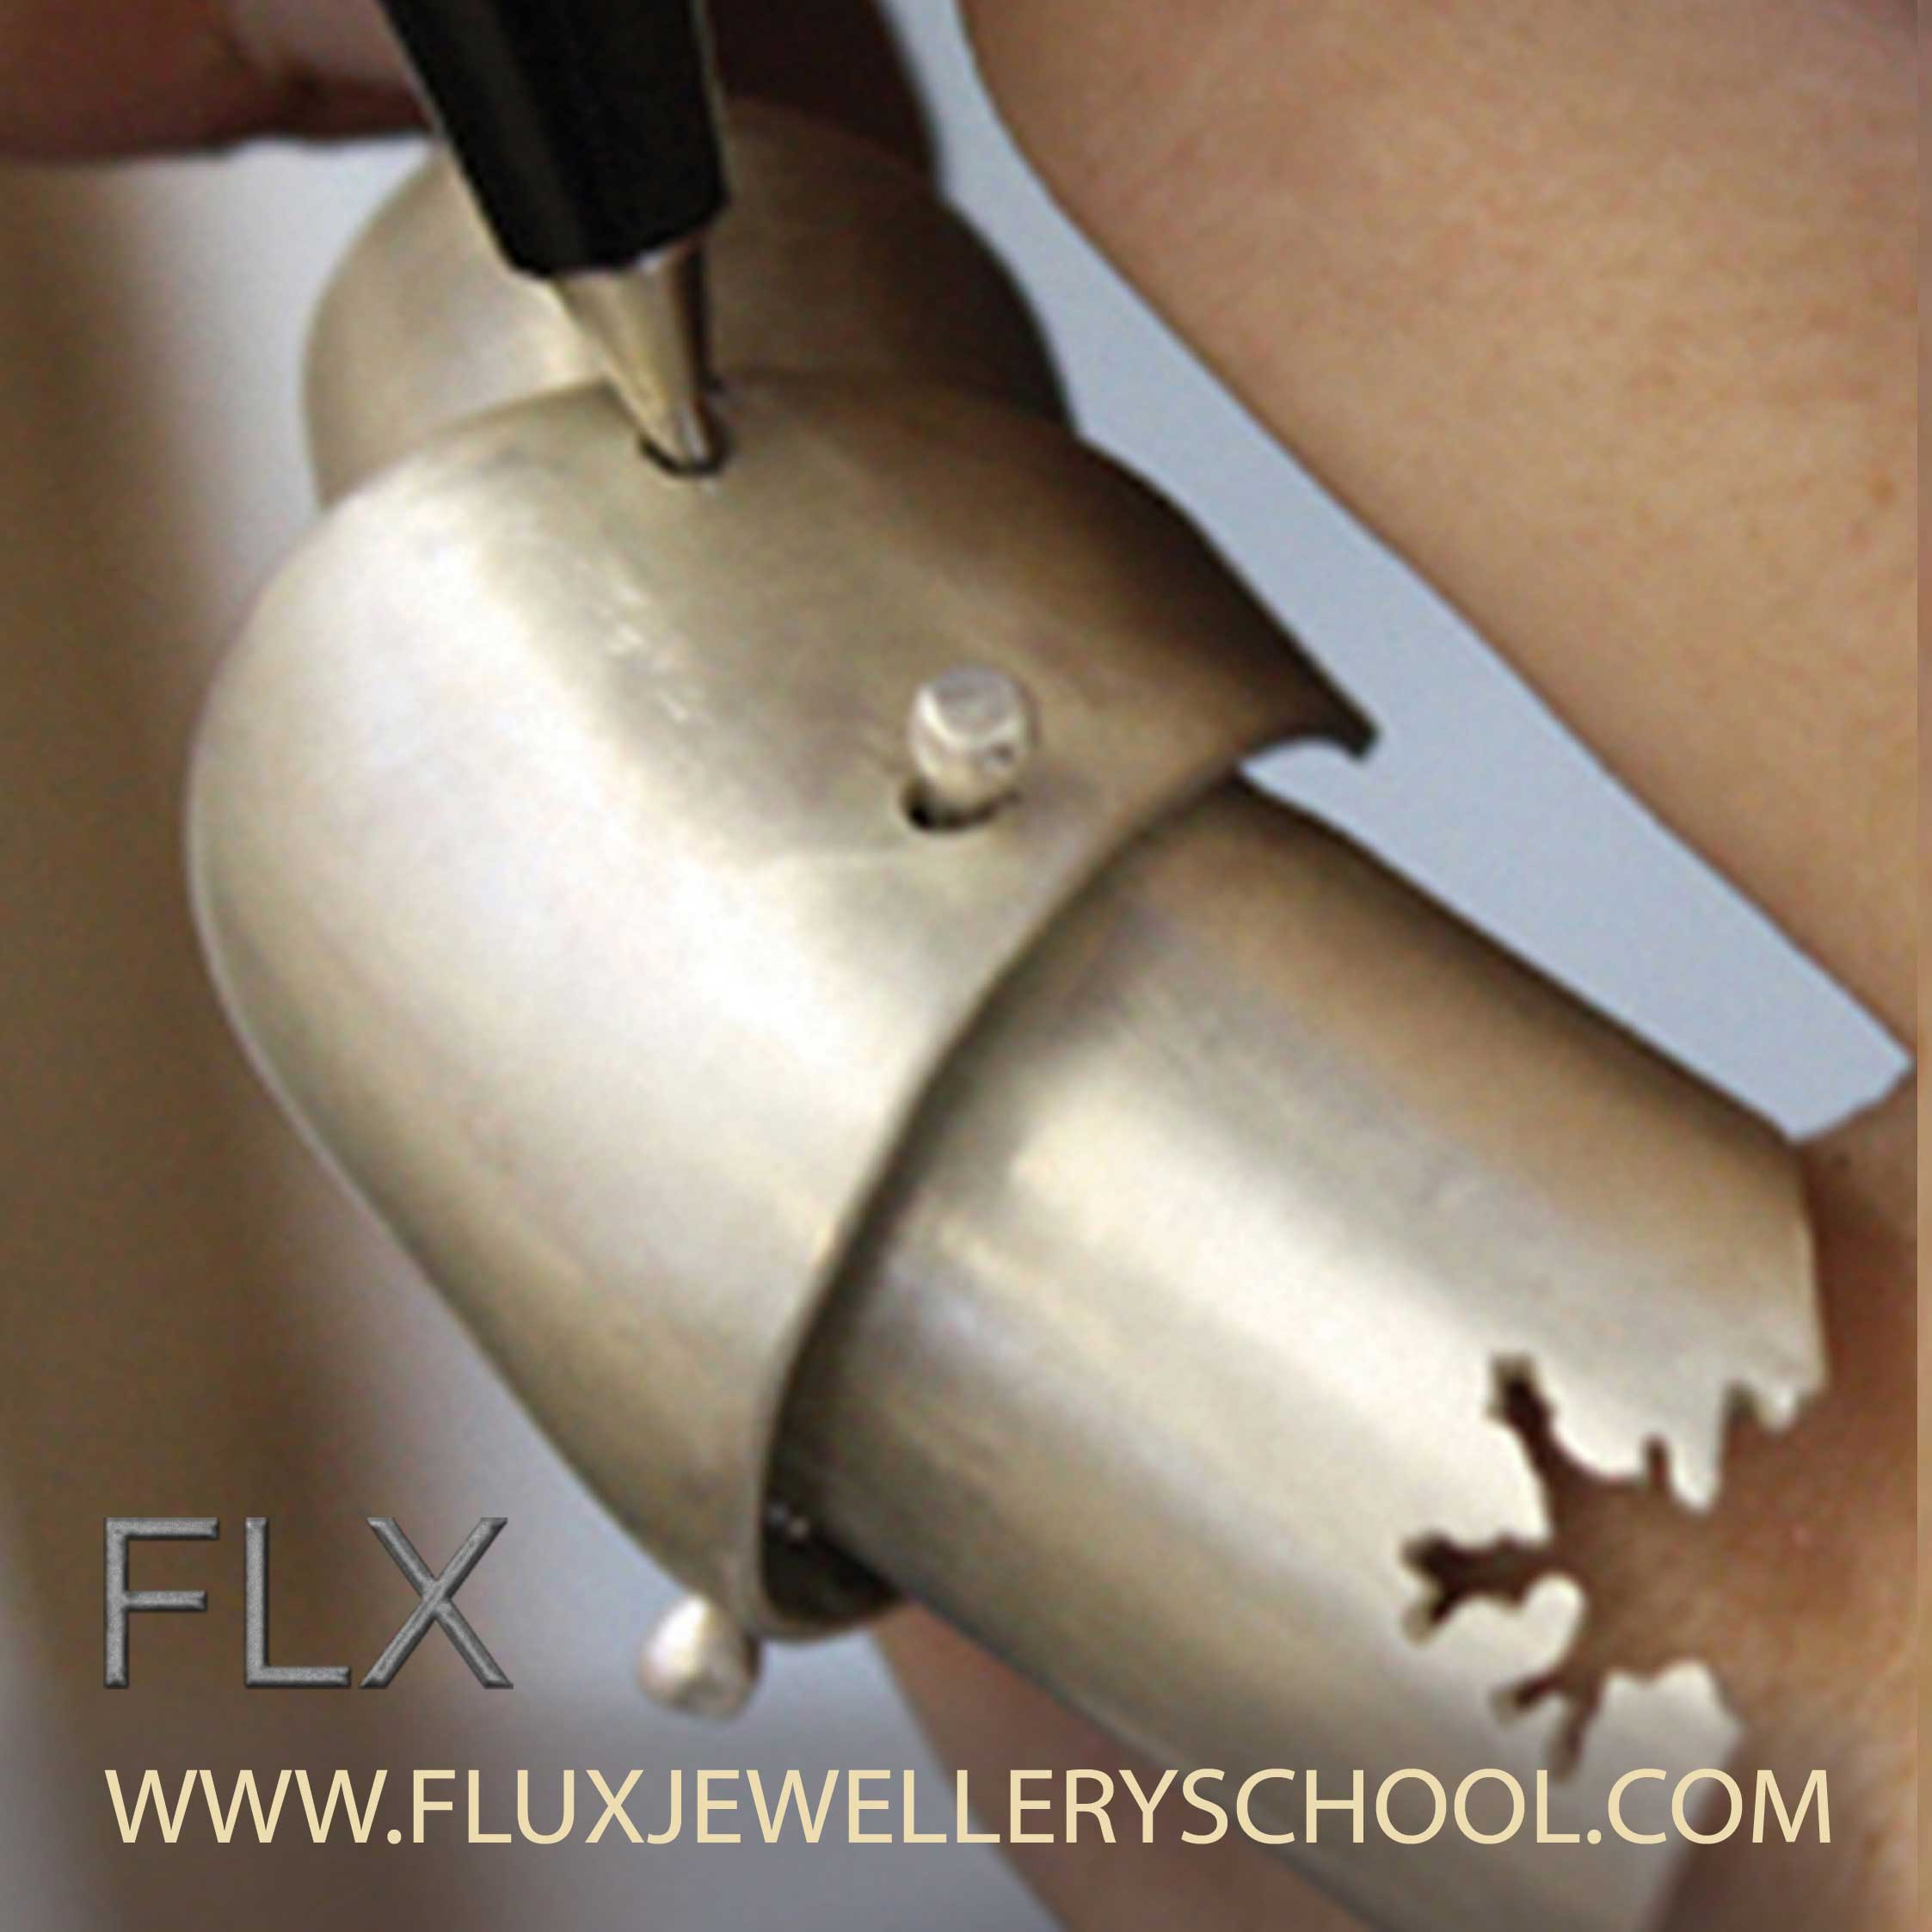 jewelry courses and jewelry classes in London